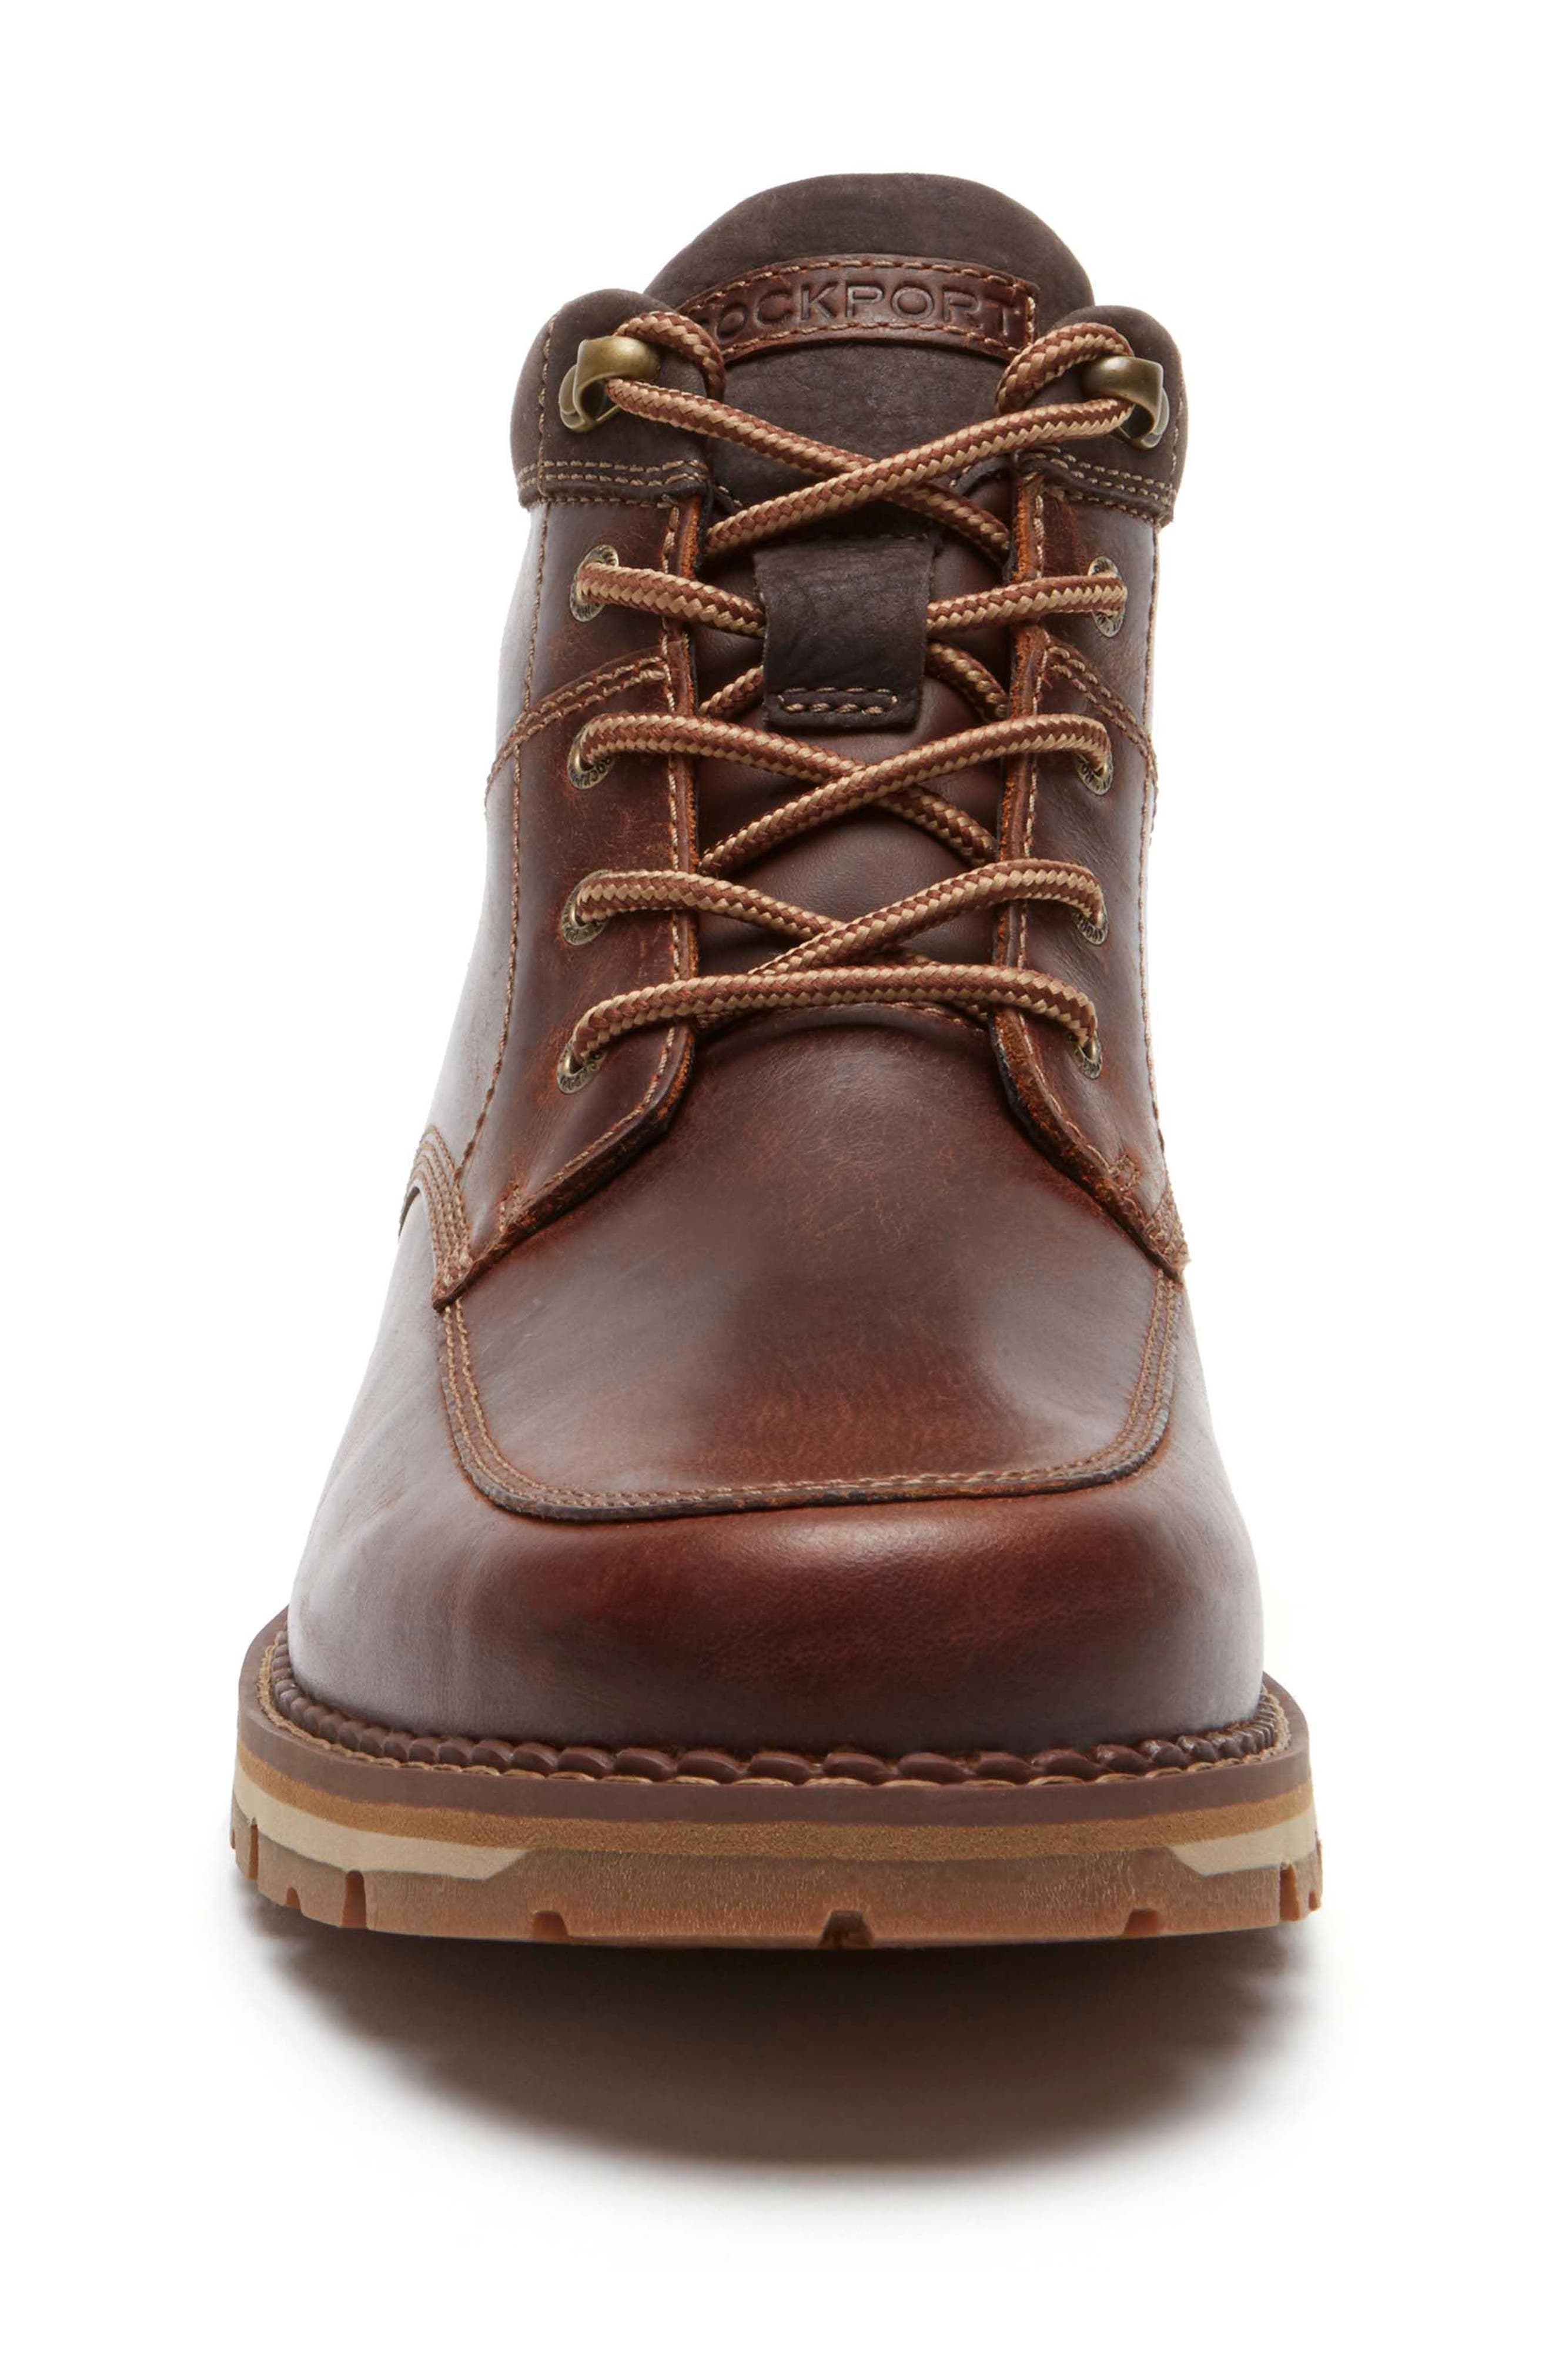 Centry Moc Toe Boot,                             Alternate thumbnail 4, color,                             Brown Leather